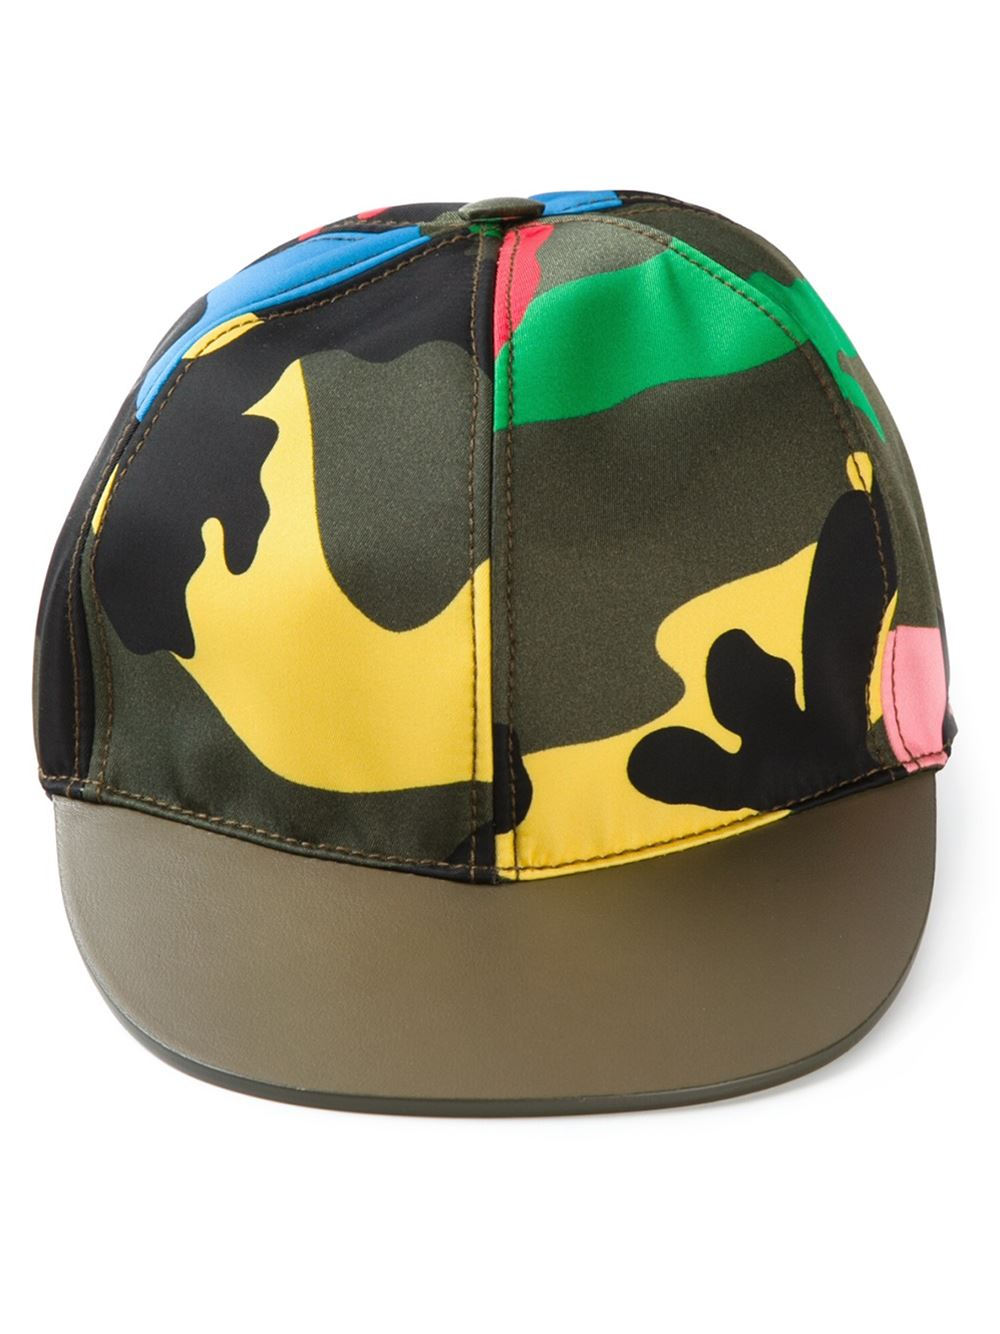 Valentino Camouflage Baseball Cap in Green - Lyst ab7c47d378e